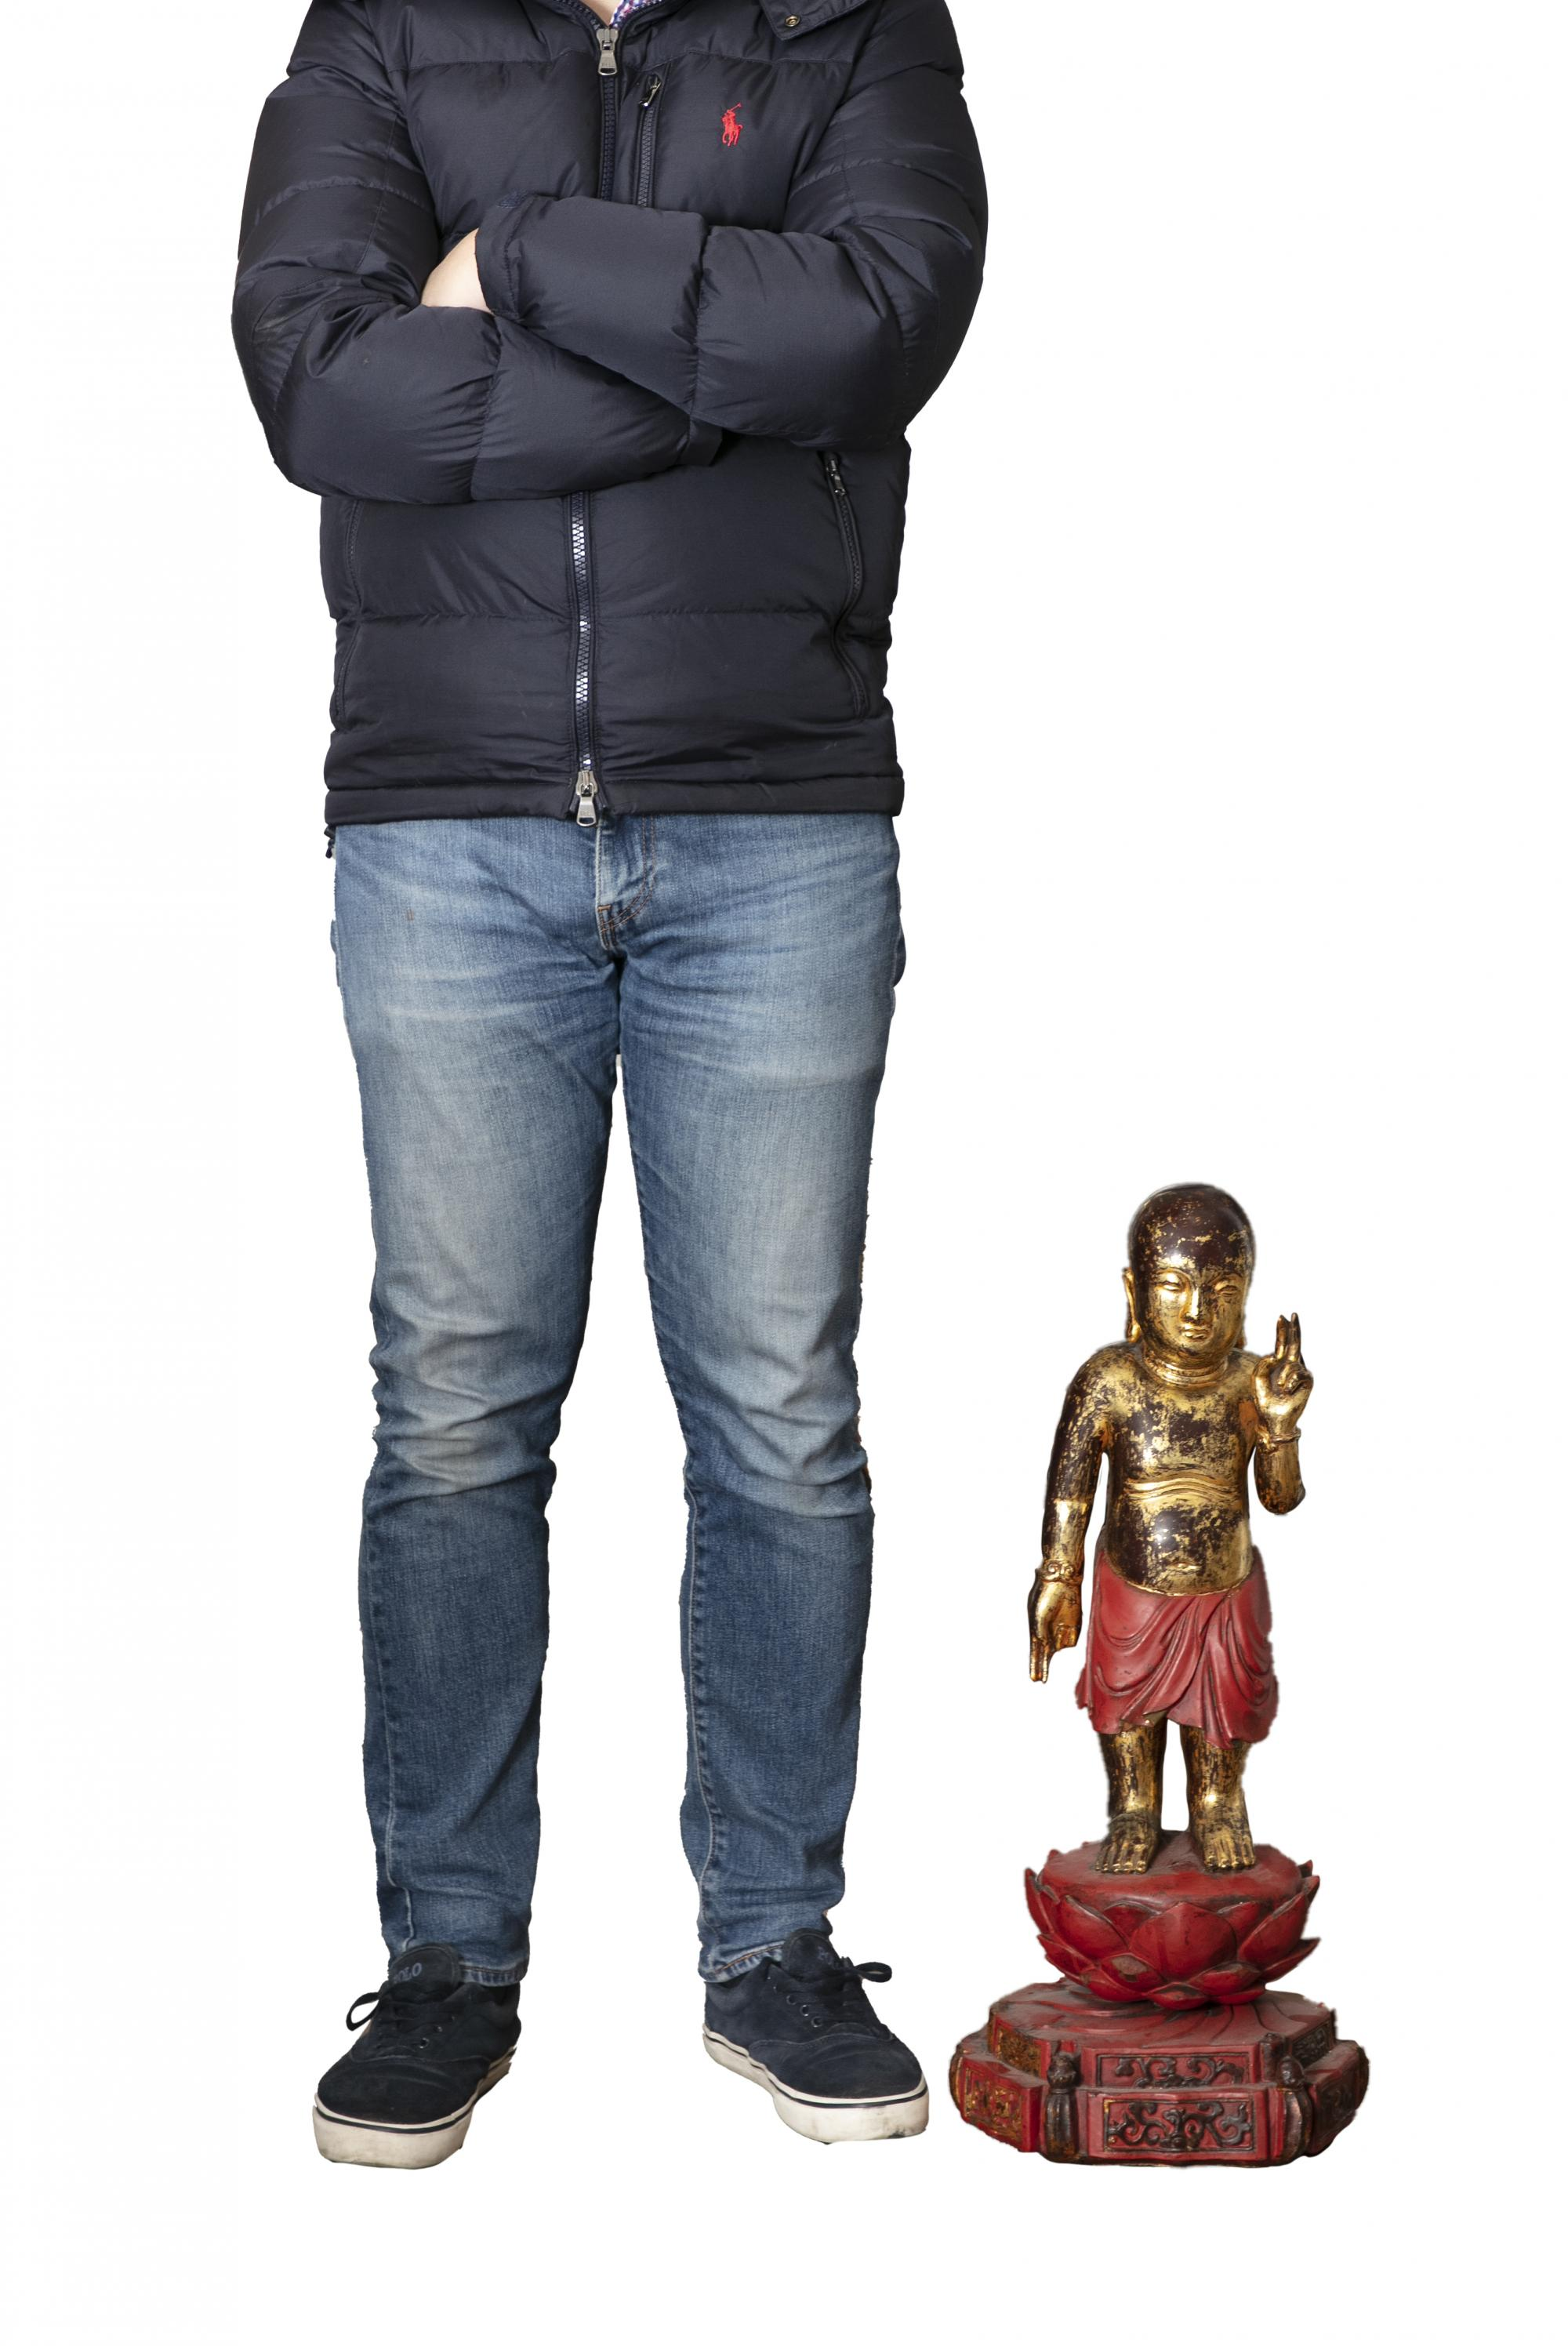 A LARGE GILT-LACQUERED WOODEN SCULPTURE OF THE STANDING INFANT BUDDHA China, Qing Dynasty (or - Image 14 of 20